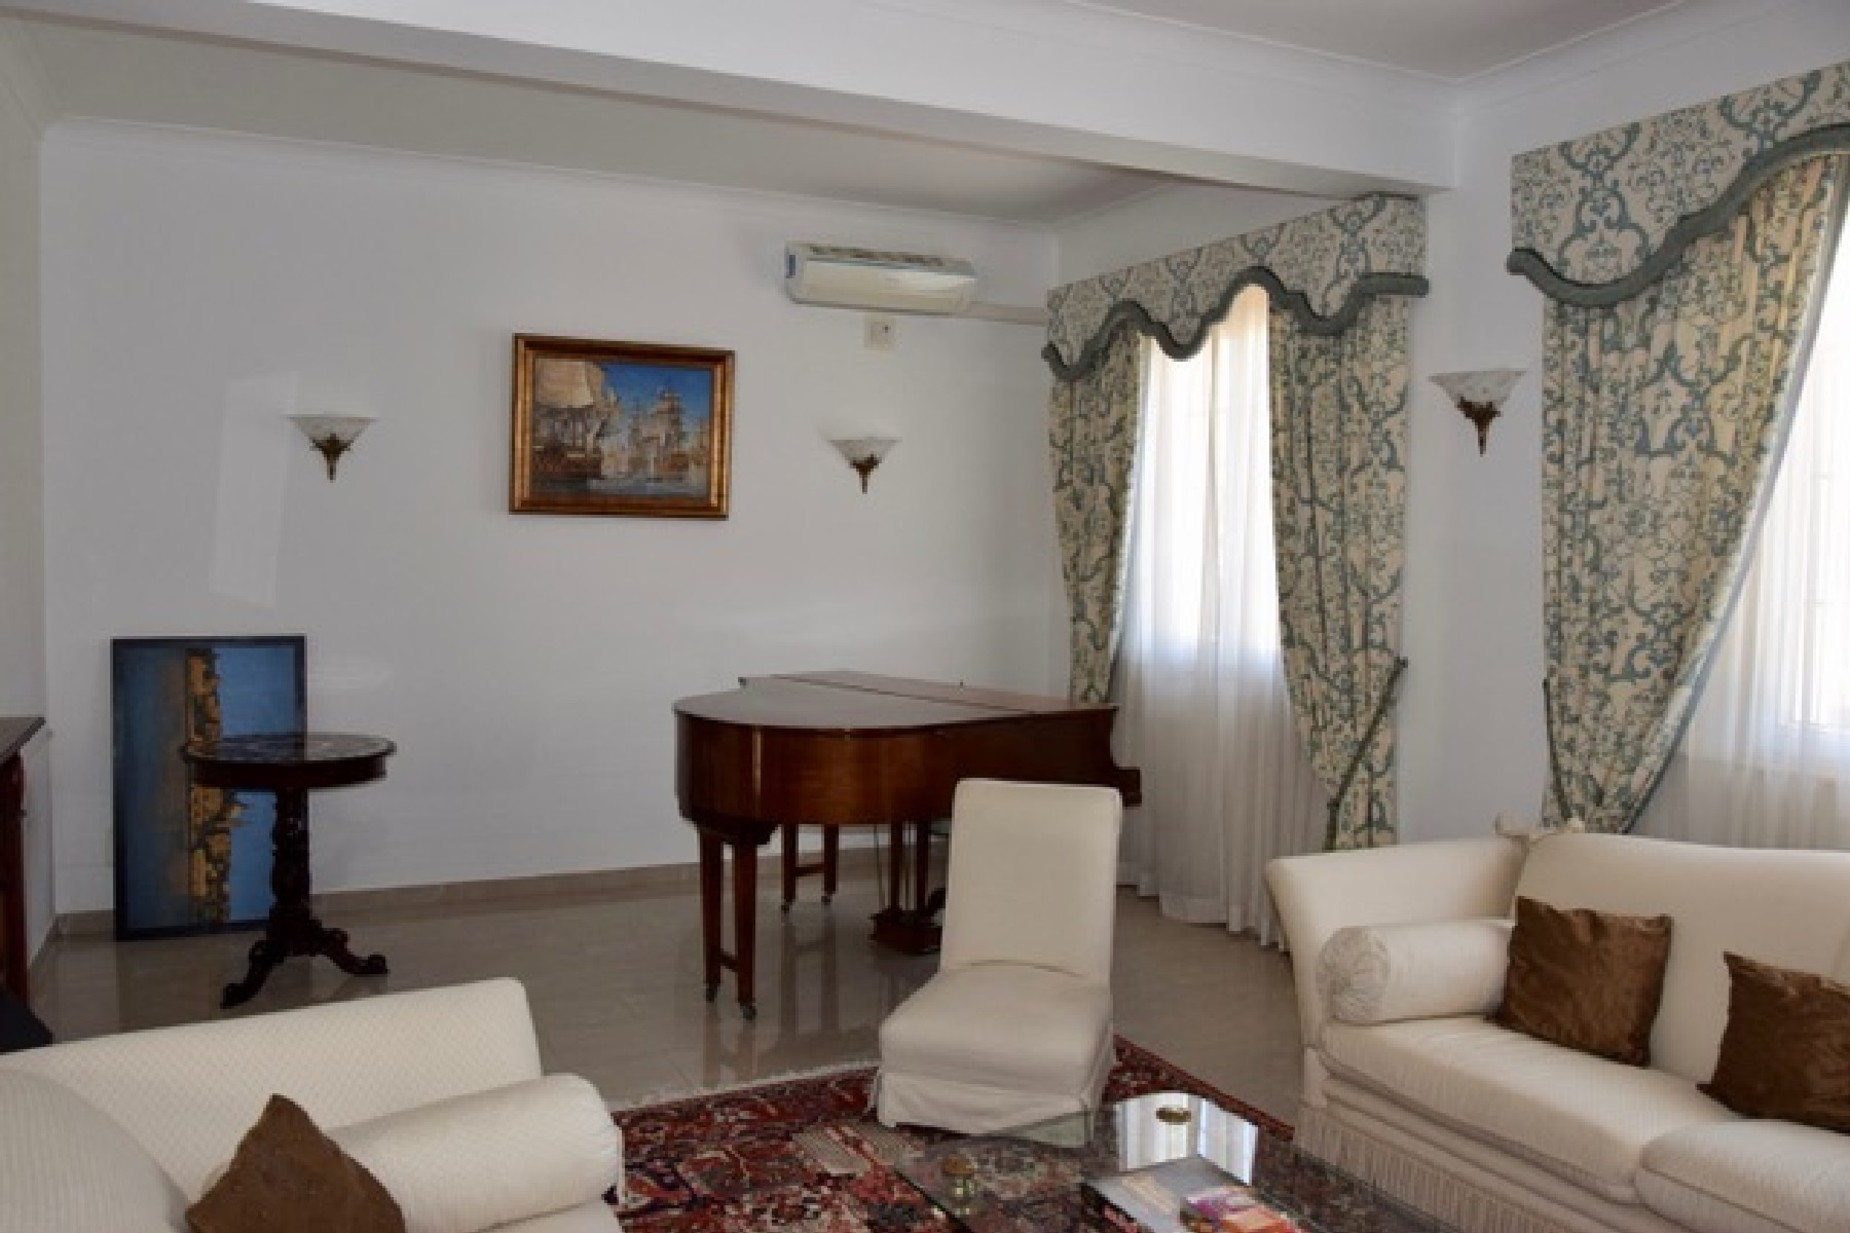 3 bed Terraced House For Rent in Swieqi, Swieqi - thumb 2